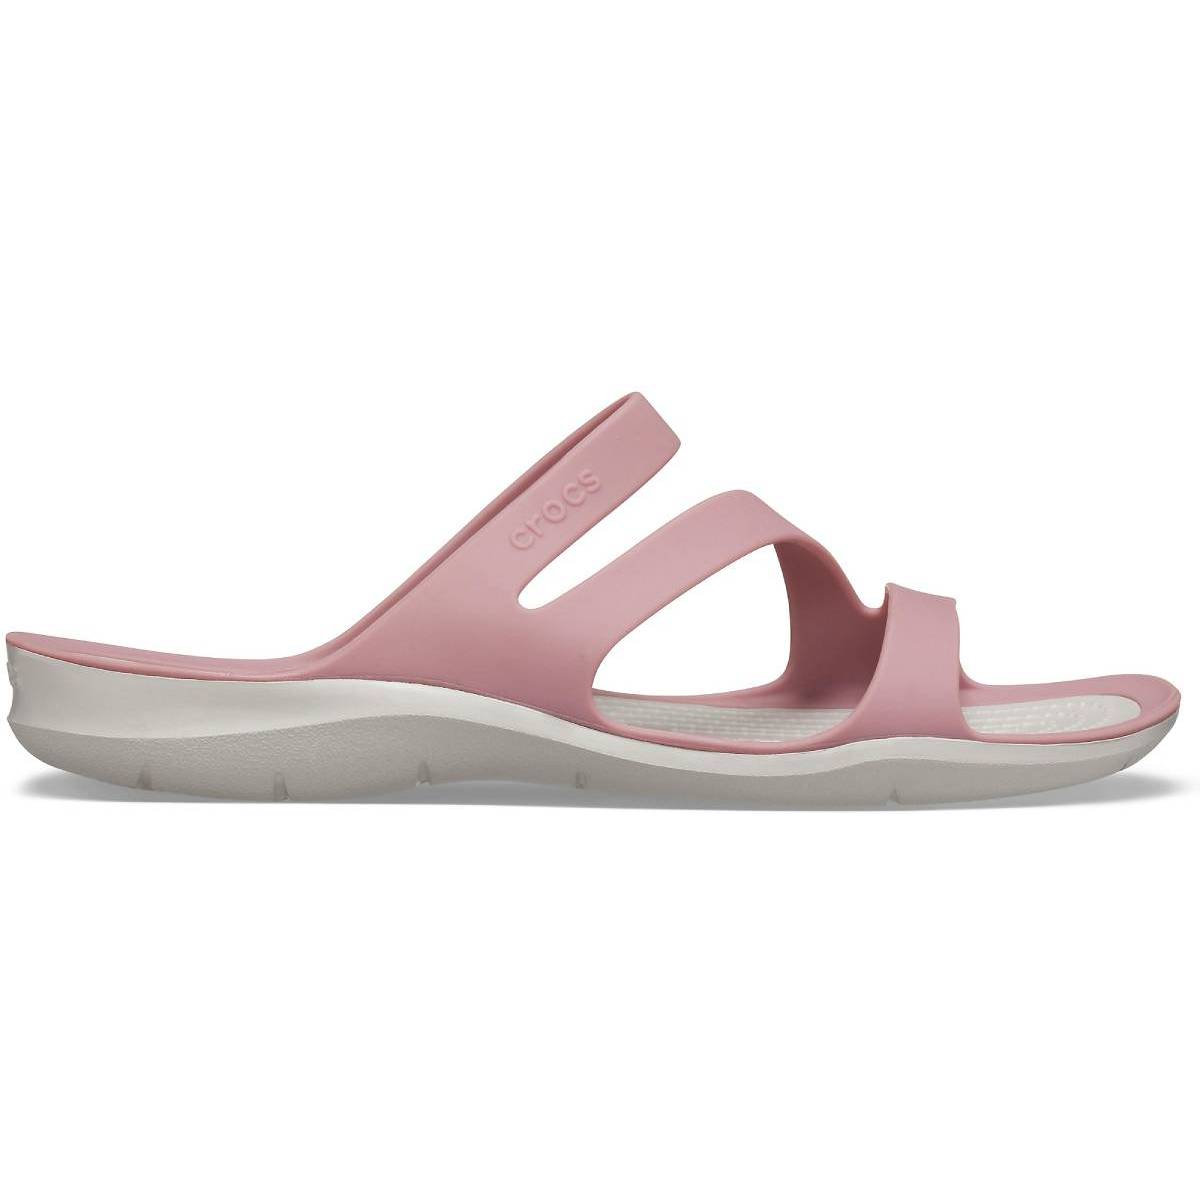 Swiftwater Sandal W - Cassis/Pearl White